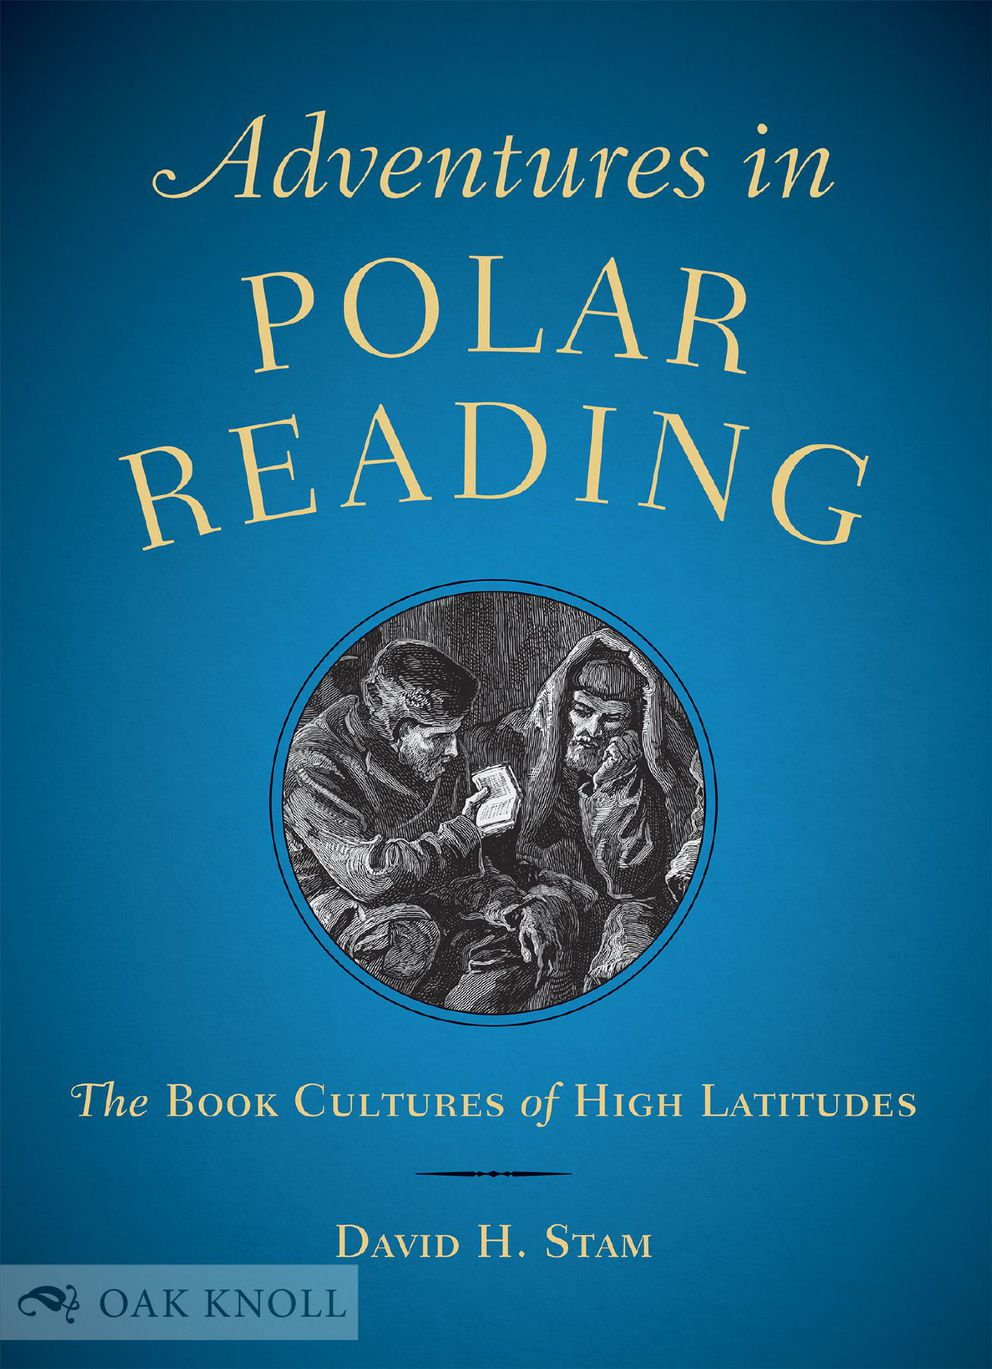 'Adventures in Polar Reading: The Book Cultures of High Latitudes, ' by David H. Stam